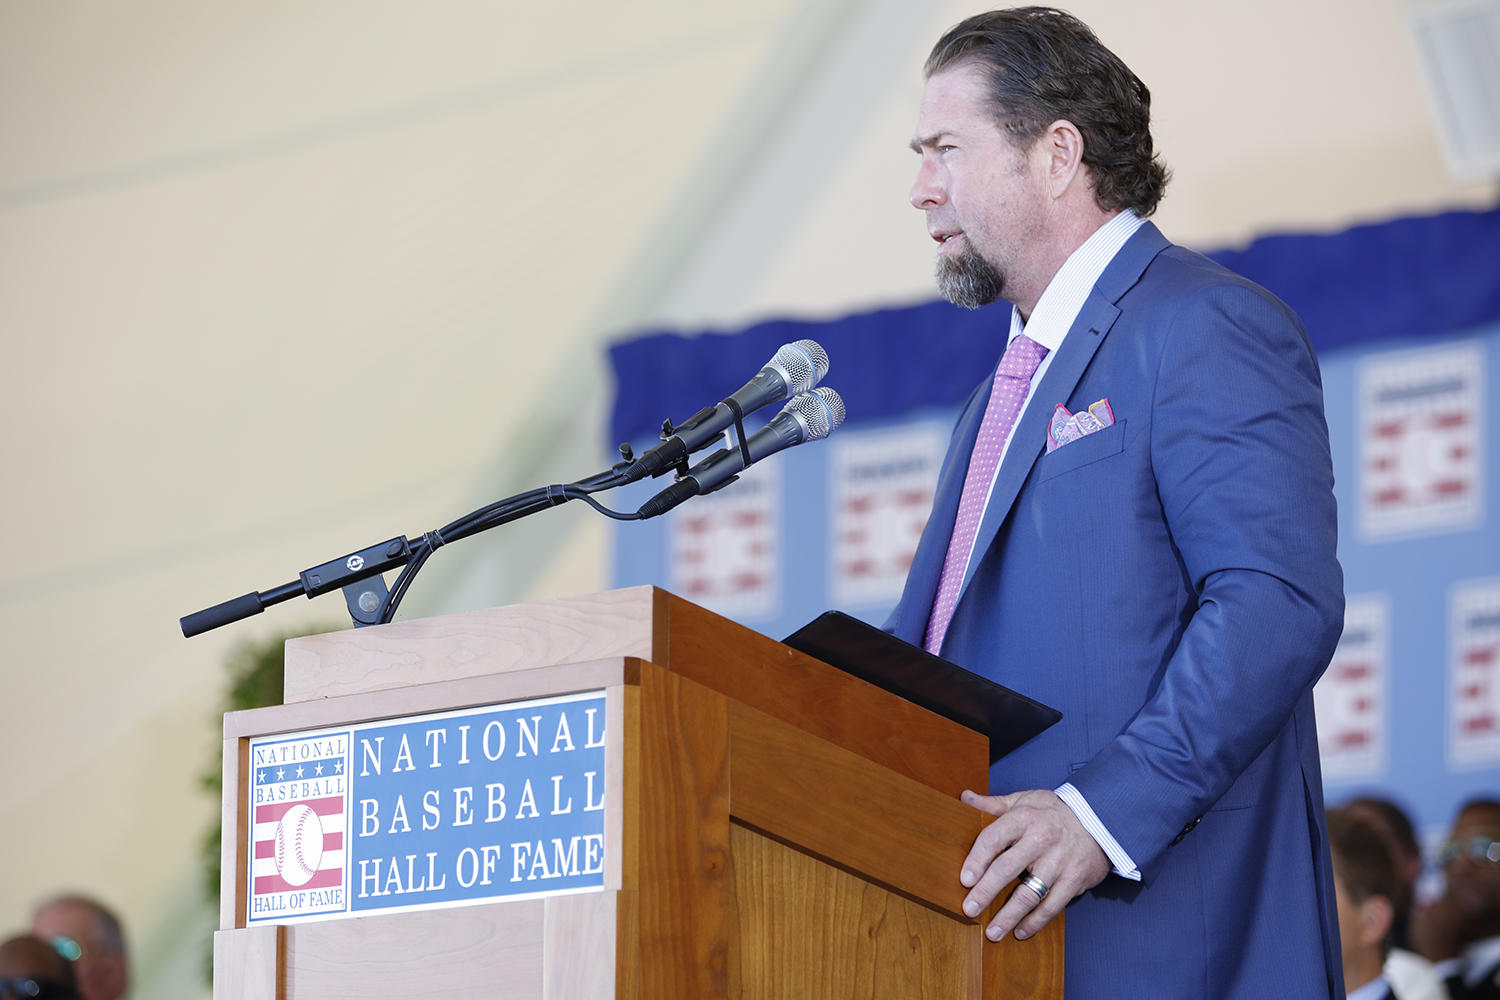 Jeff Bagwell spoke about the influence his parents had on his baseball career during the 2017 <em>Induction Ceremony</em>. (Milo Stewart Jr. / National Baseball Hall of Fame and Museum)